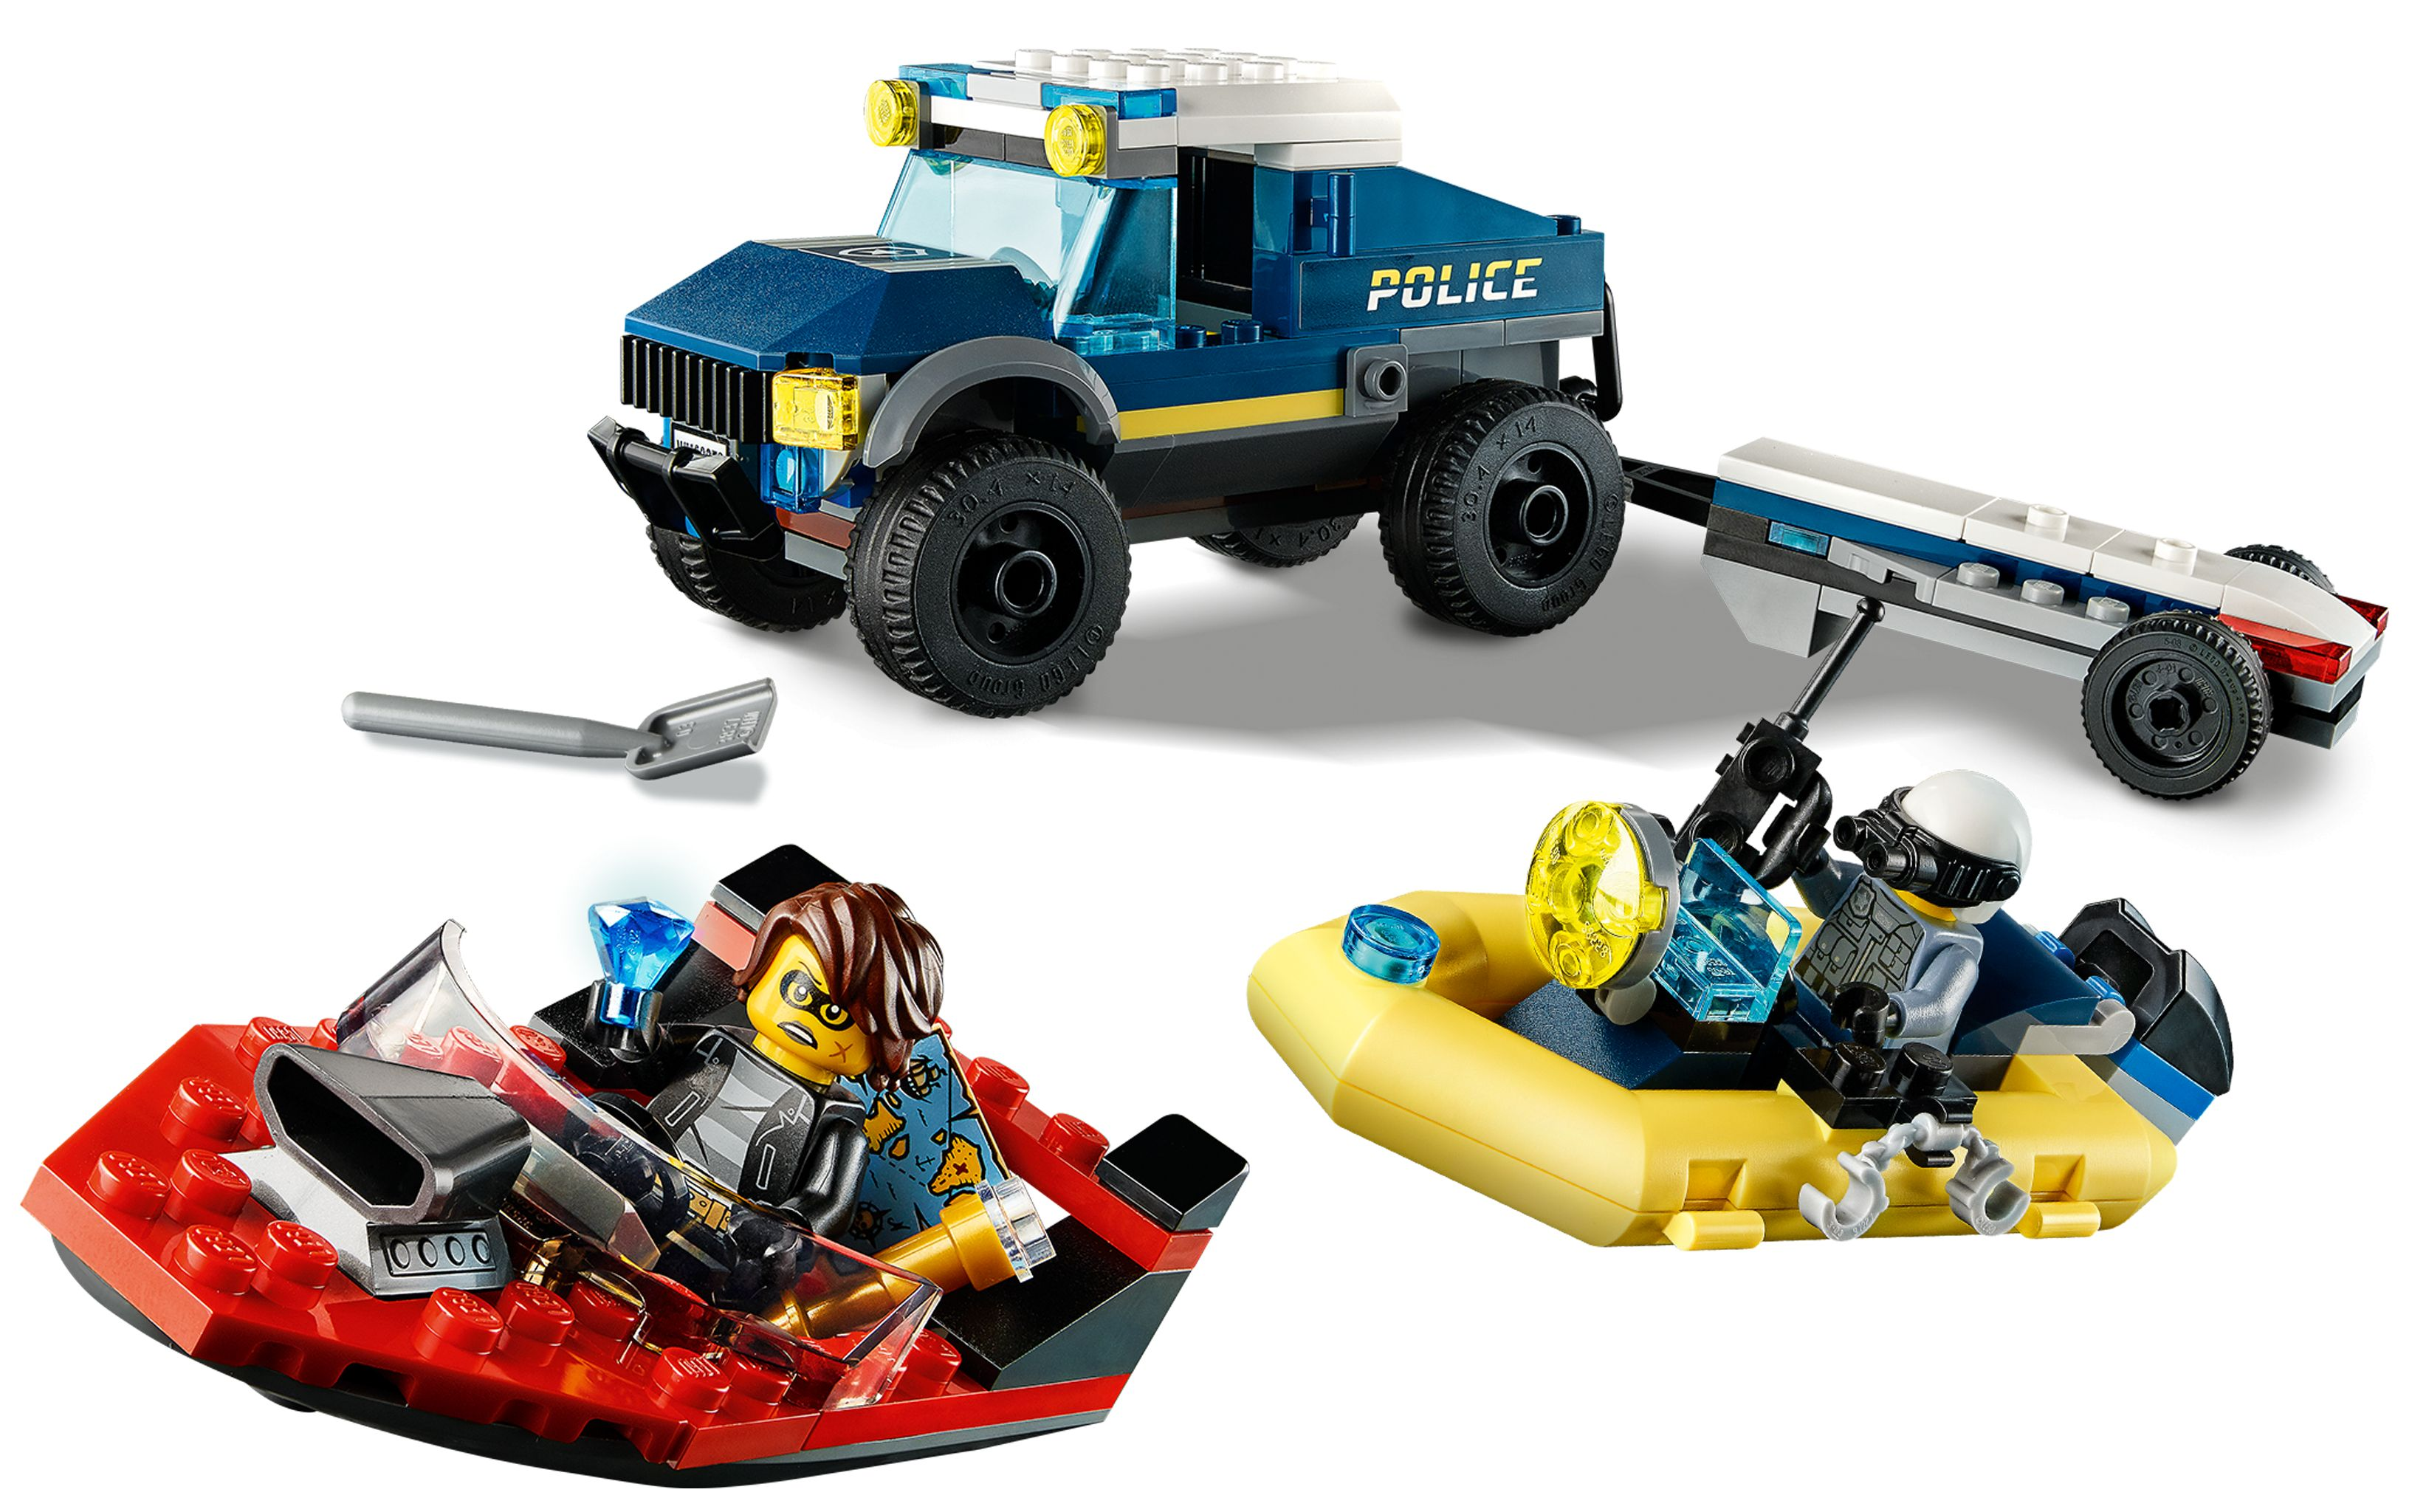 LEGO City 60272 Transport des Polizeiboots LEGO_60272_alt2.jpg